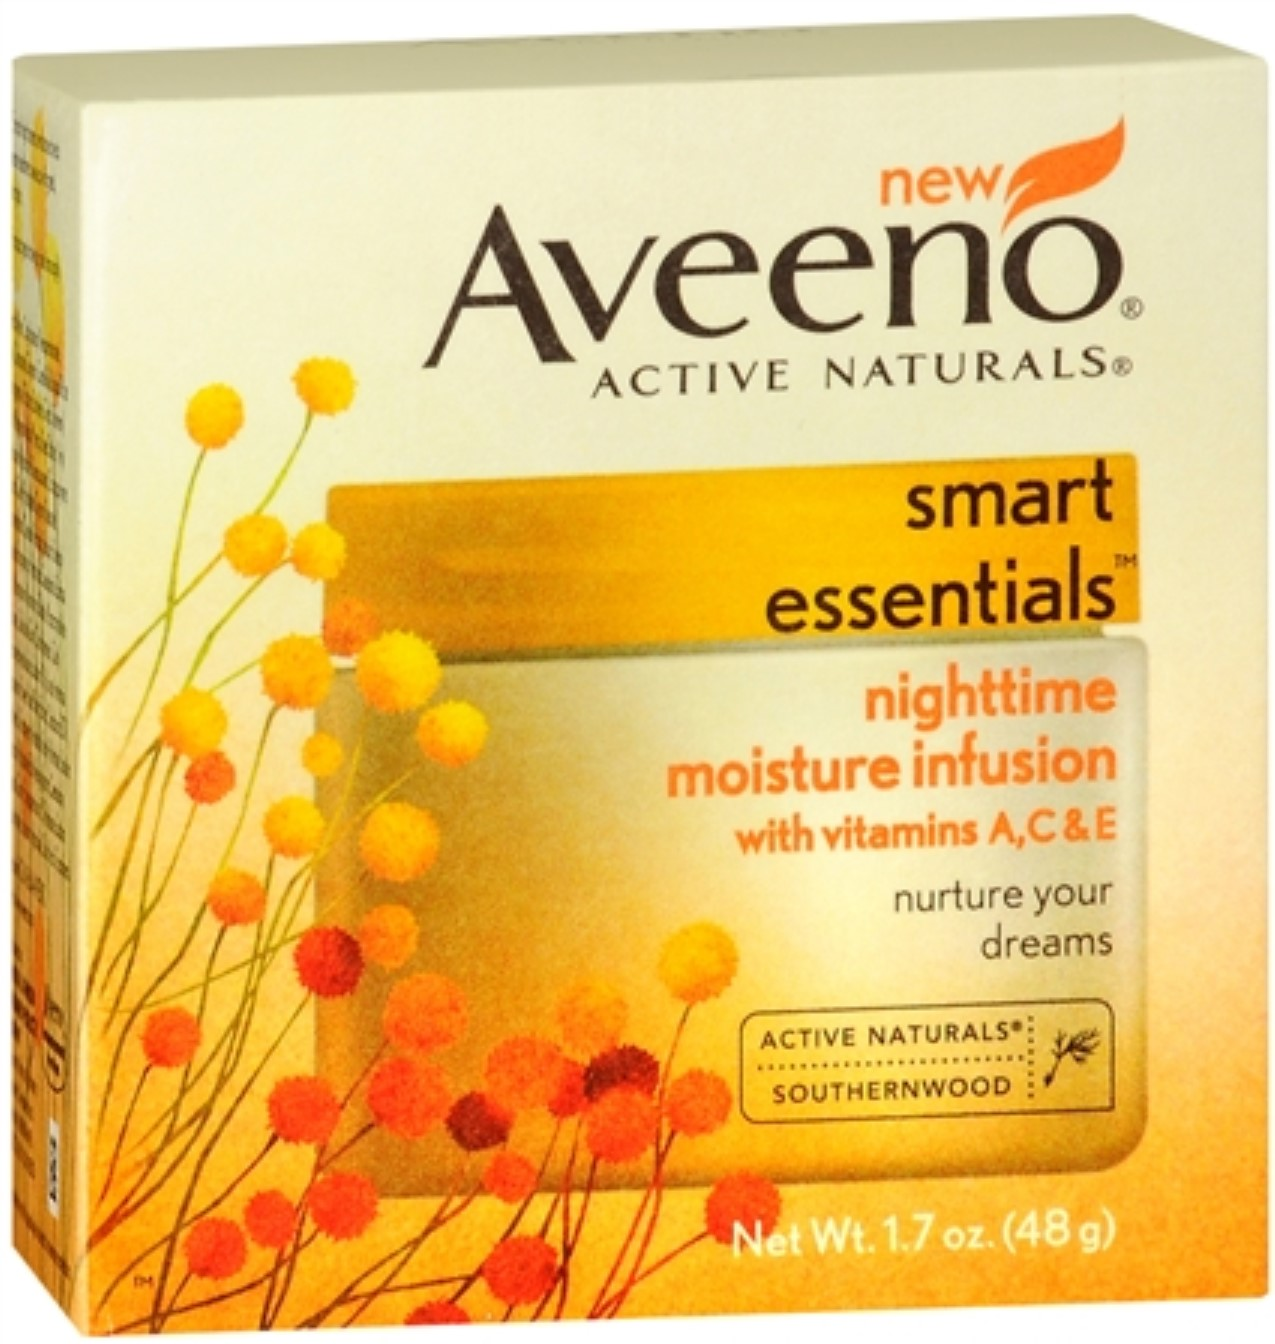 AVEENO Active Naturals Smart Essentials Nighttime Moisture Infusion 1.70 oz